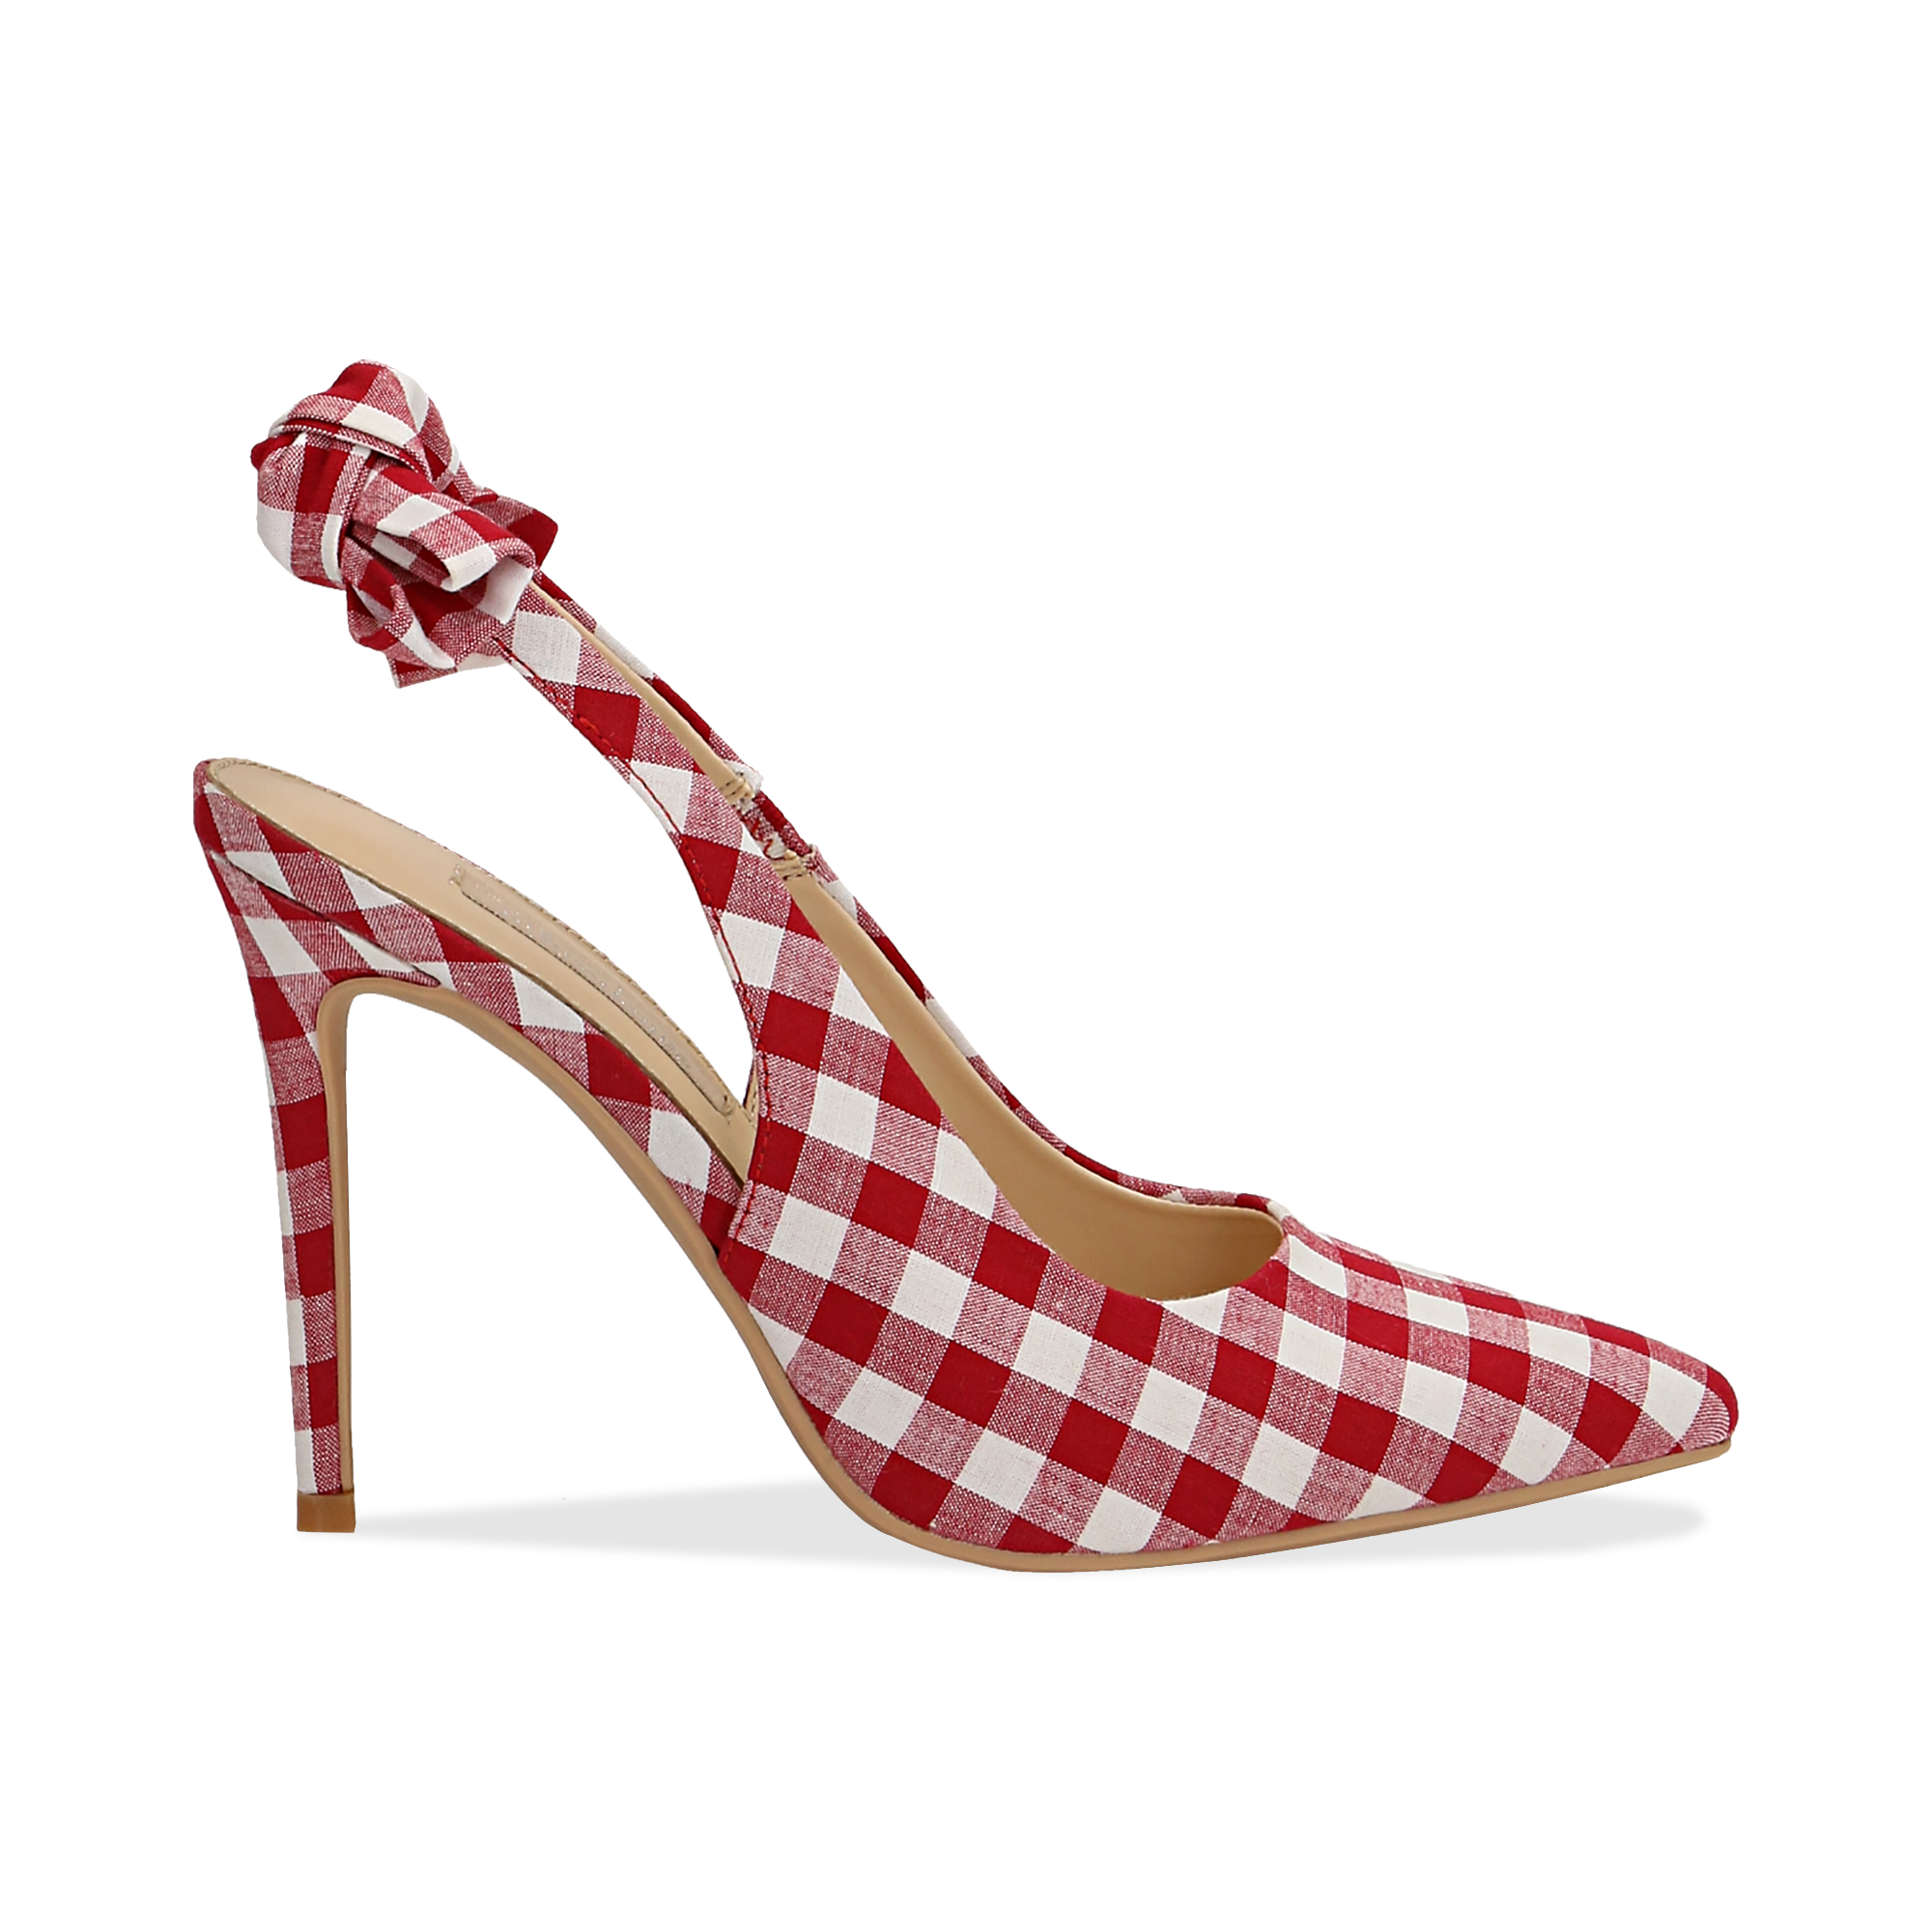 Décolleté Slingback bianco/rosse in tessuto Vichy, tacco 10,5 cm,